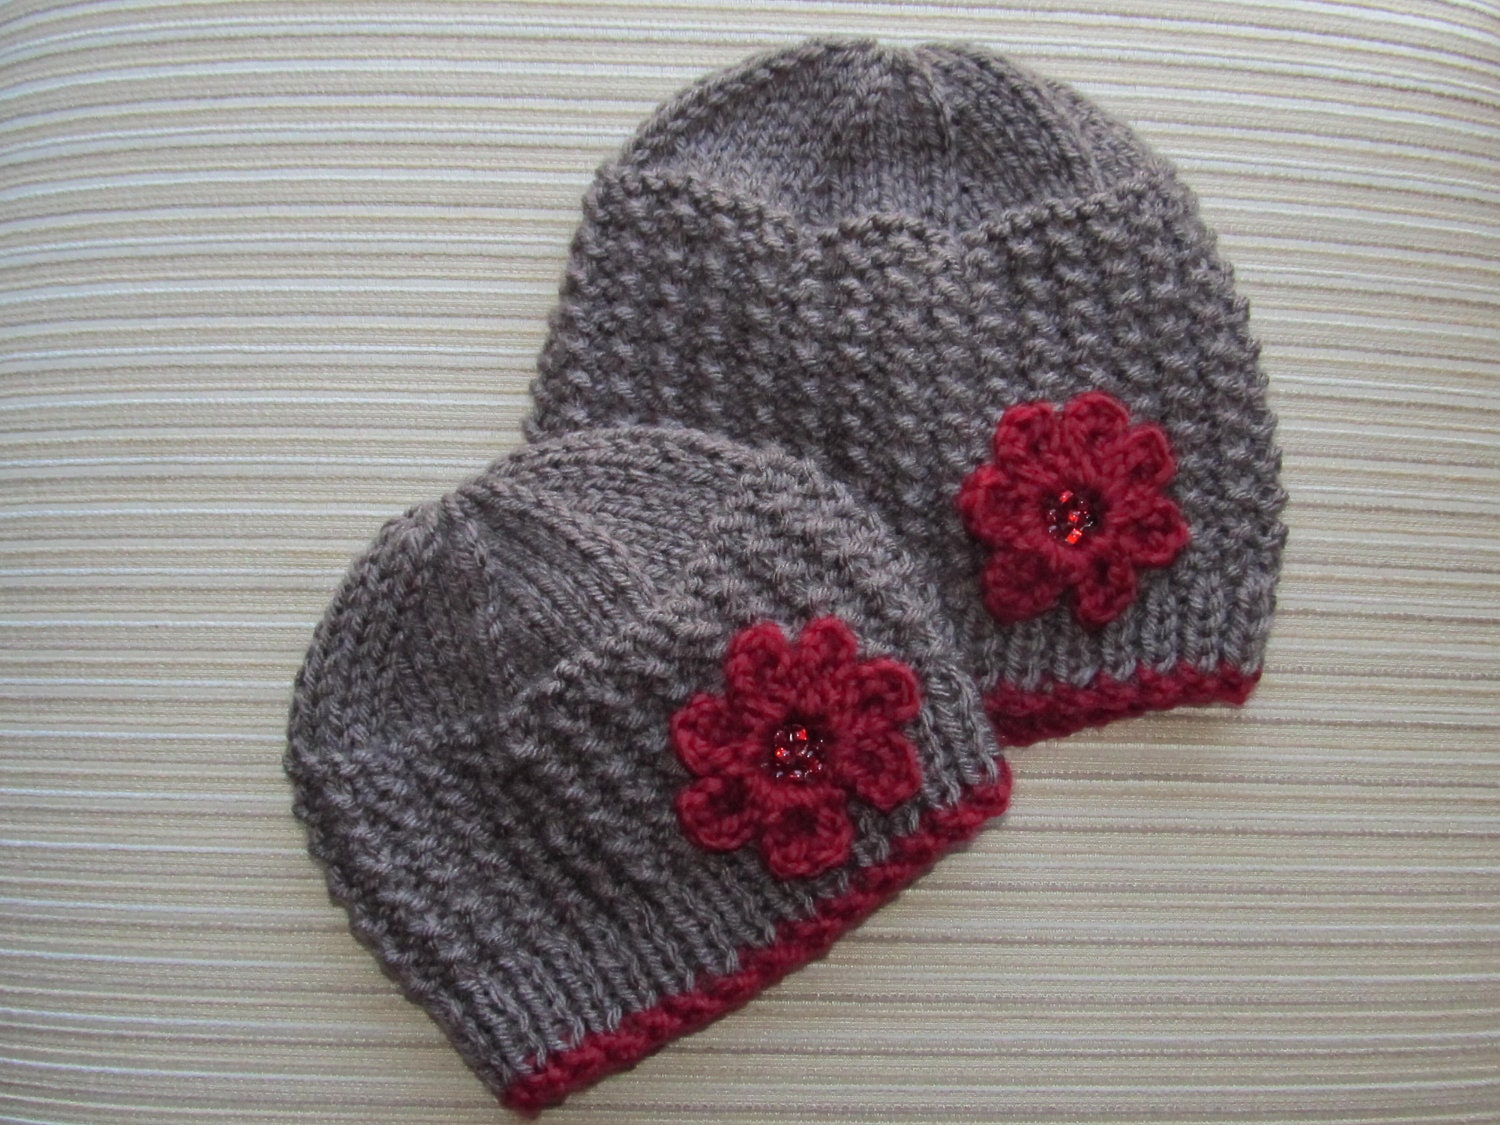 Knitting Hat Pattern Circular Needles : How to knit baby booties with circular needles